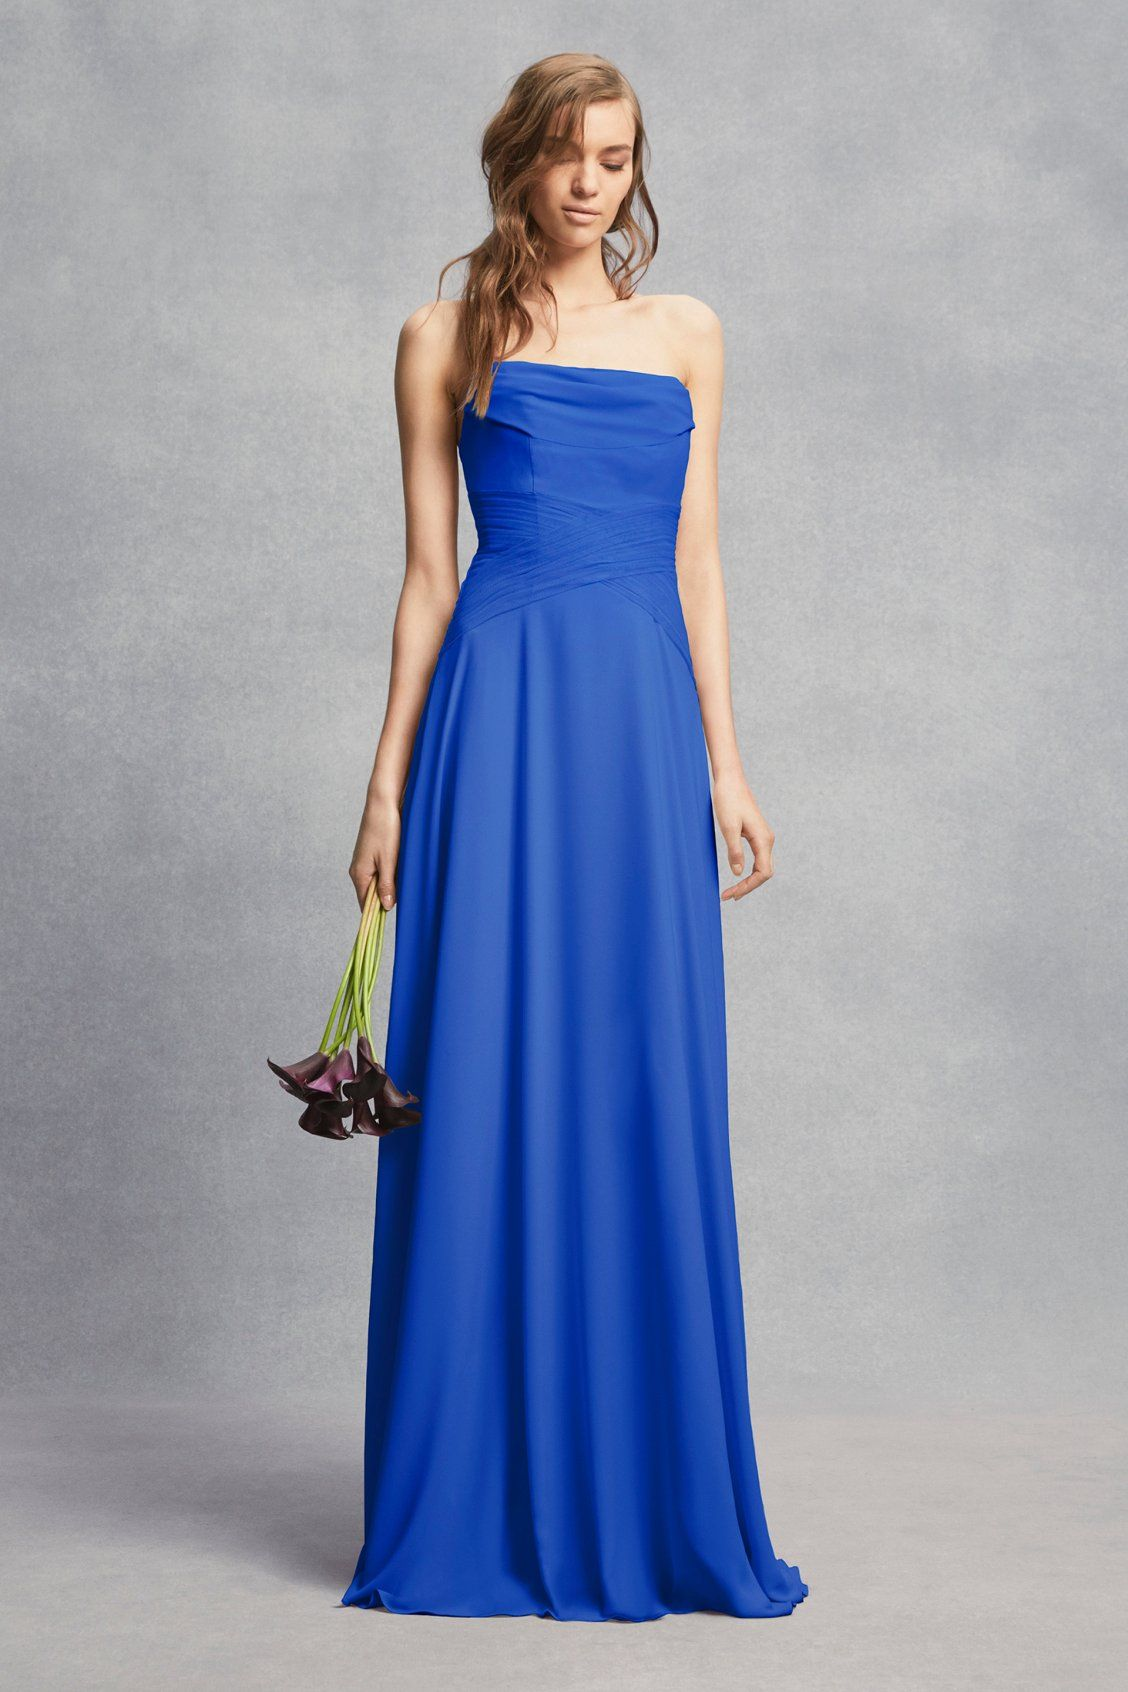 5e6eab3f55 Strapless Georgette Sheath Bridesmaid Dress